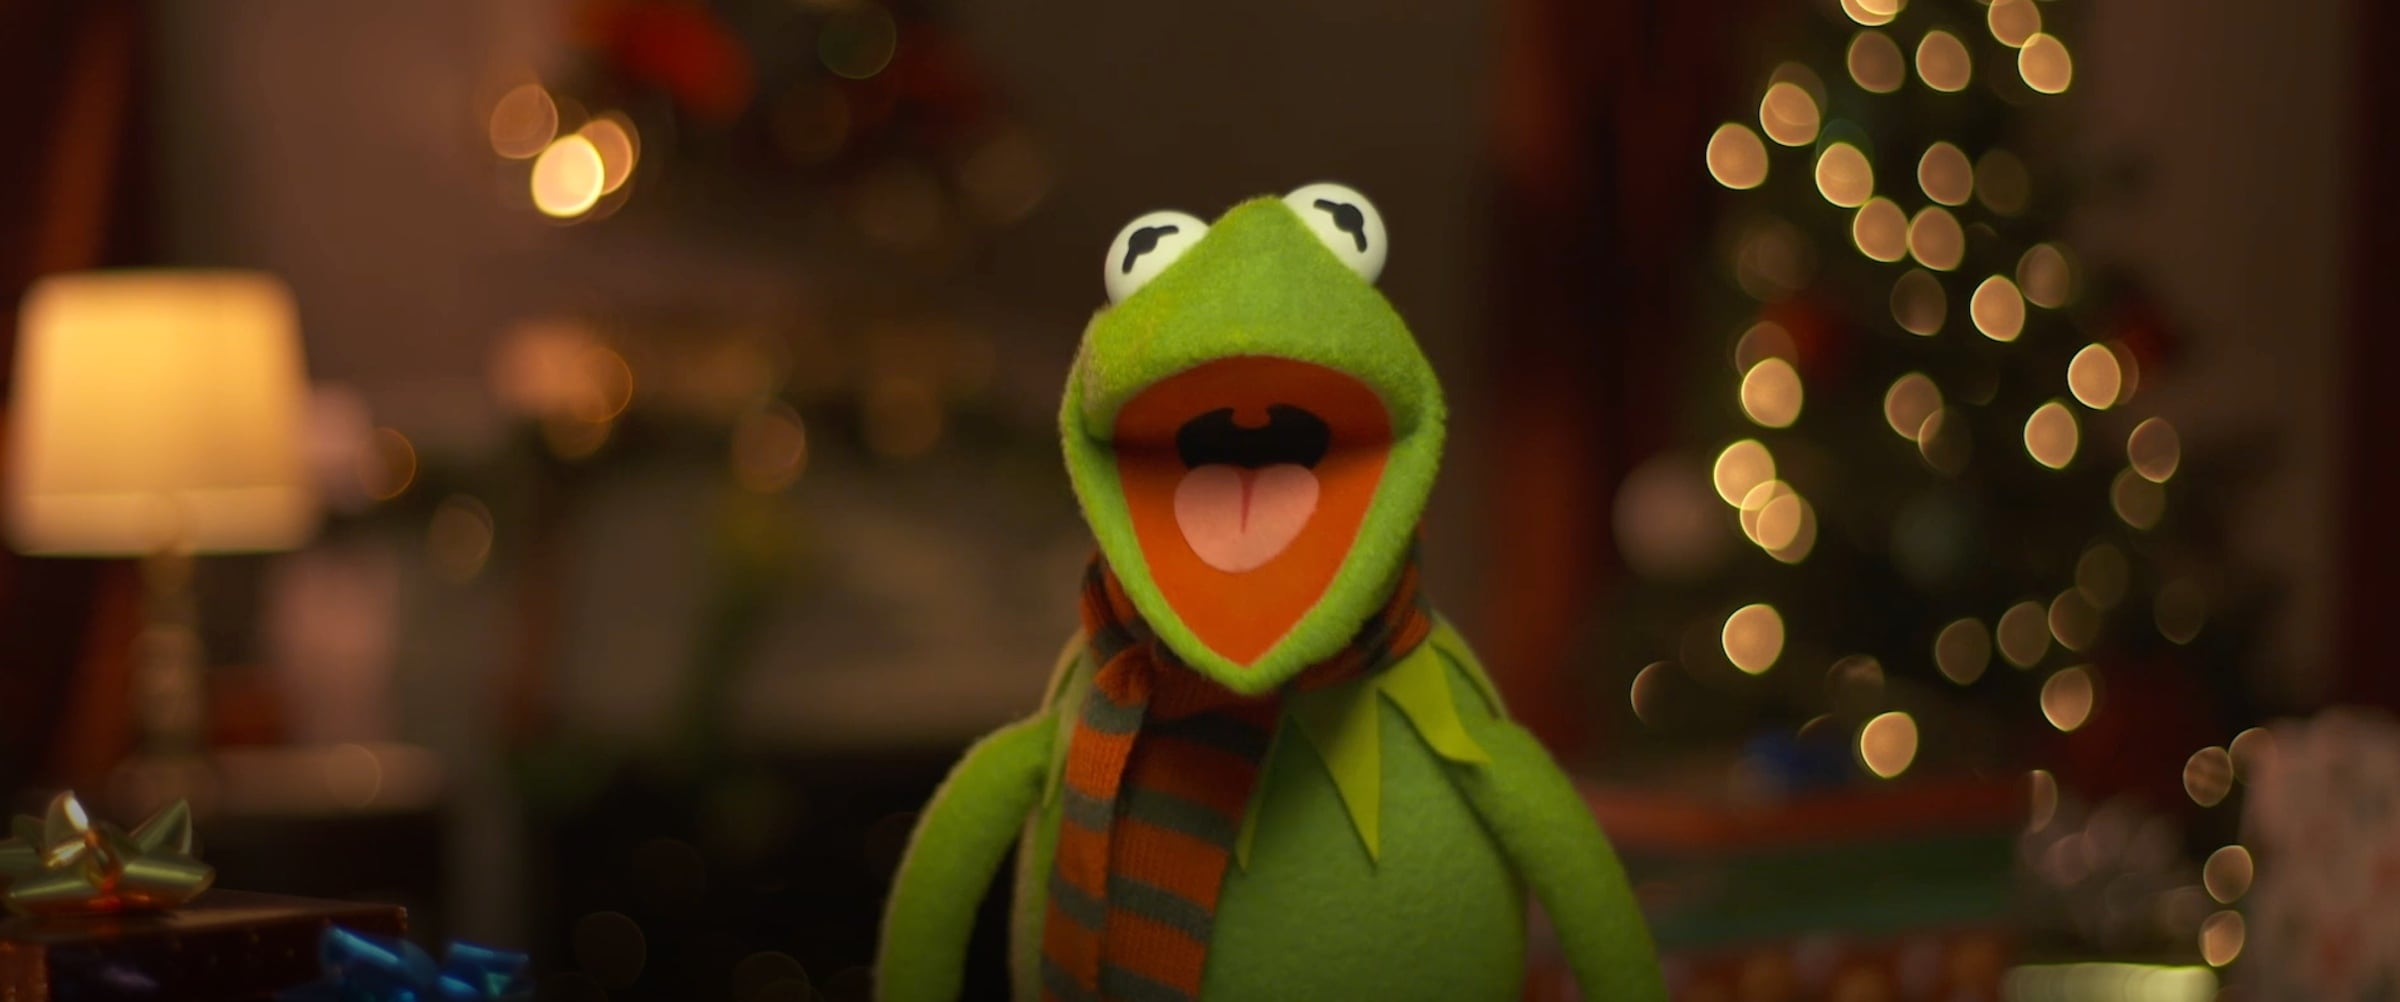 DisneyLife | Kermit's Christmas Countdown